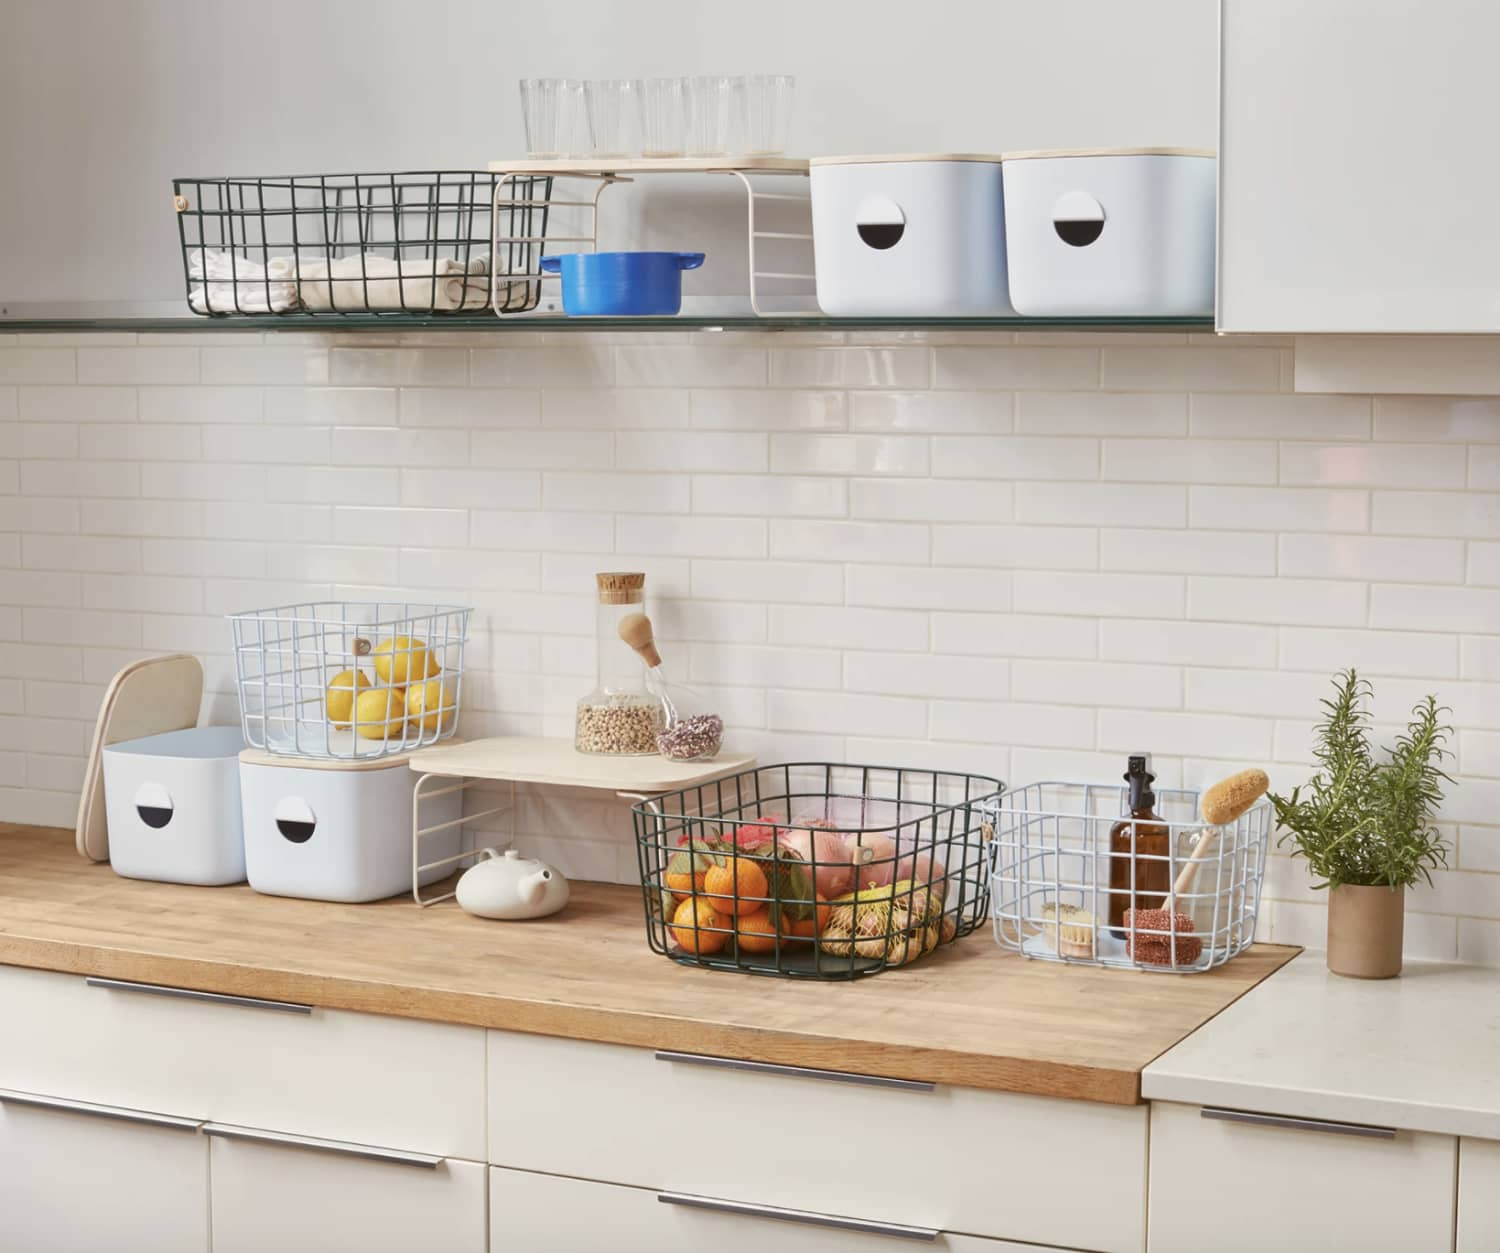 These Stylish Storage Solutions Are Like If IKEA and Urban Outfitters Had a Baby